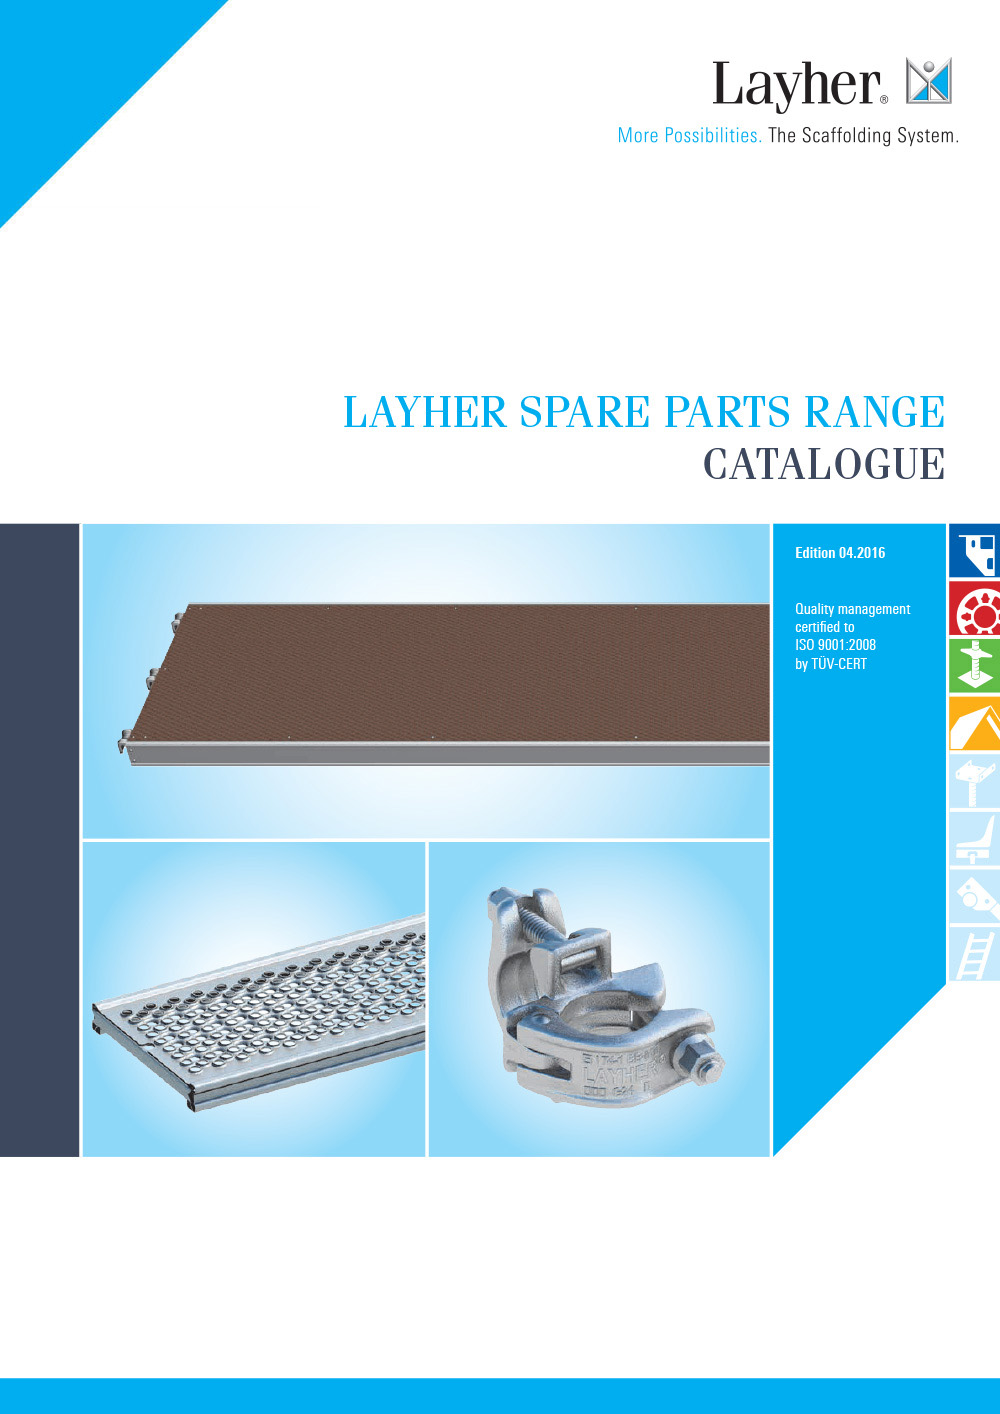 Layher Spare Parts Range Catalogue